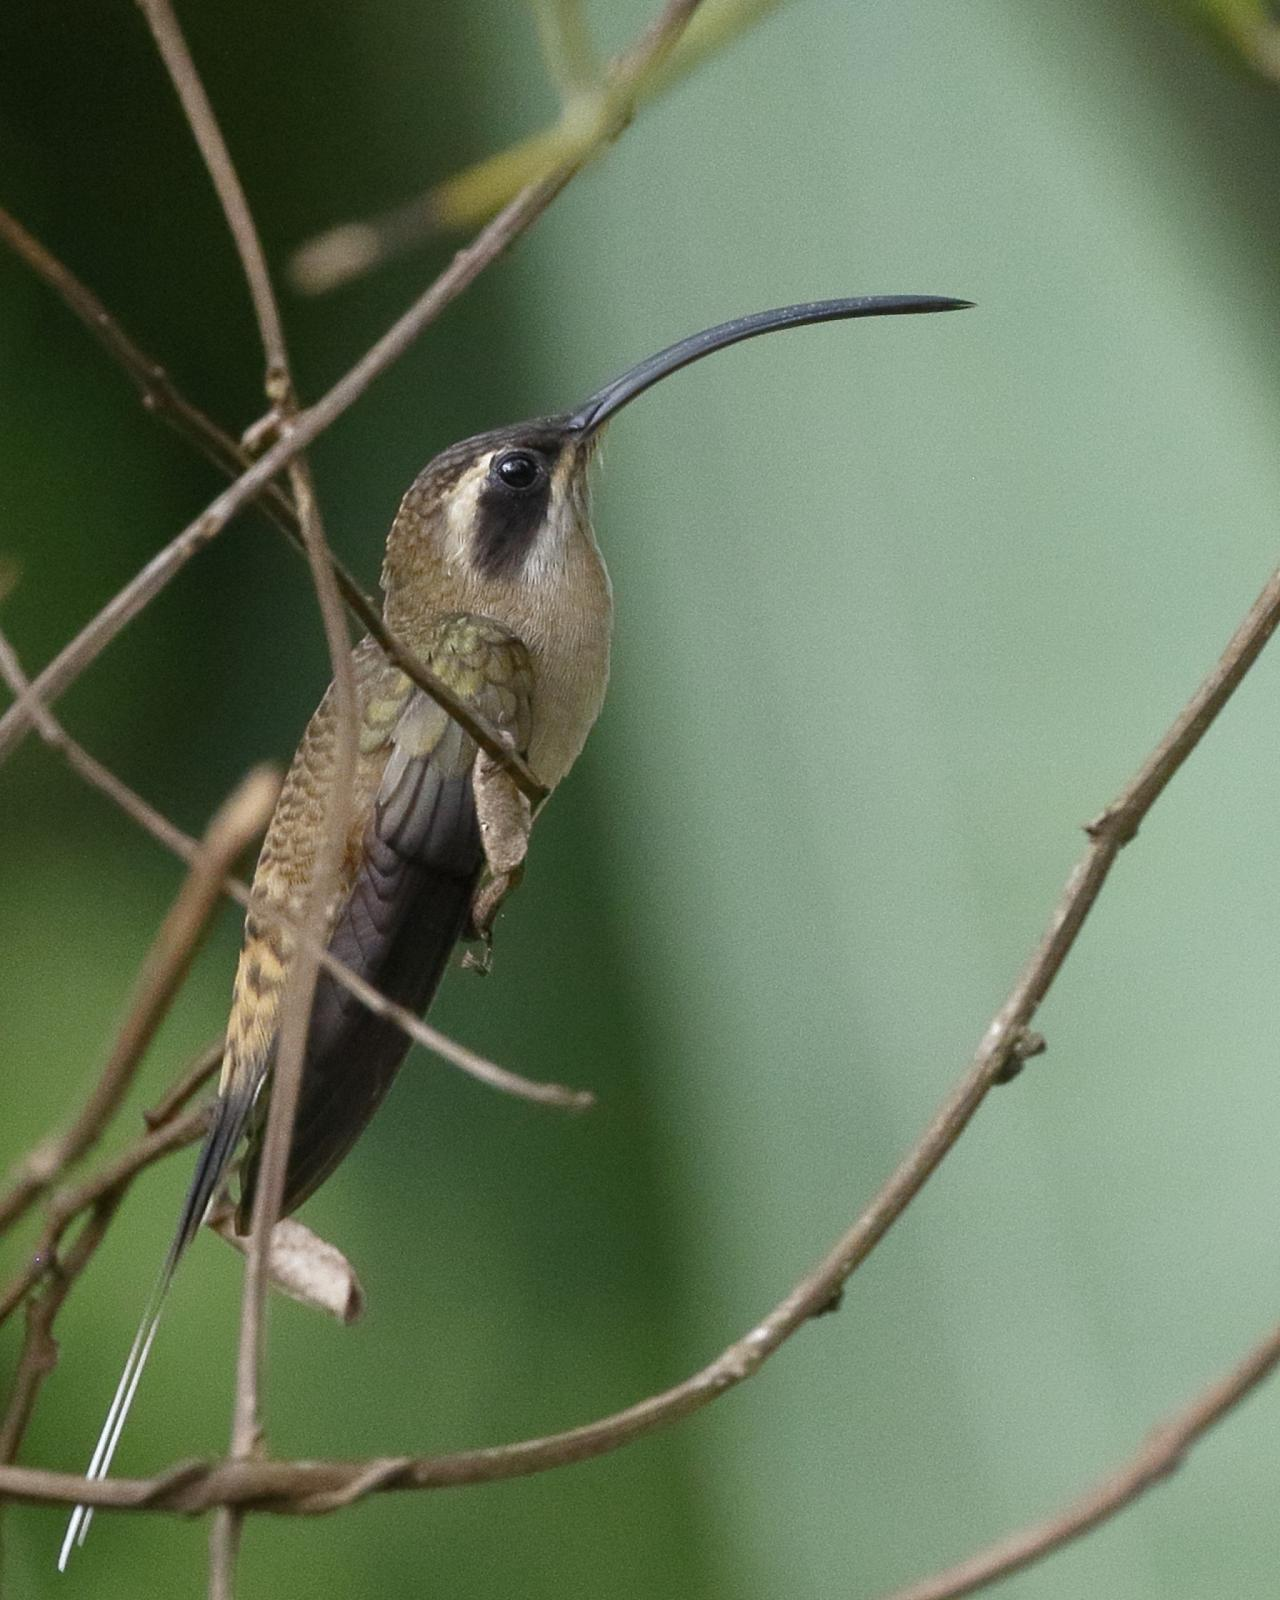 Long-billed Hermit, Belize, Belize Birding Tour, Belize Nature Tour, Winter Belize Tour, Naturalist Journeys